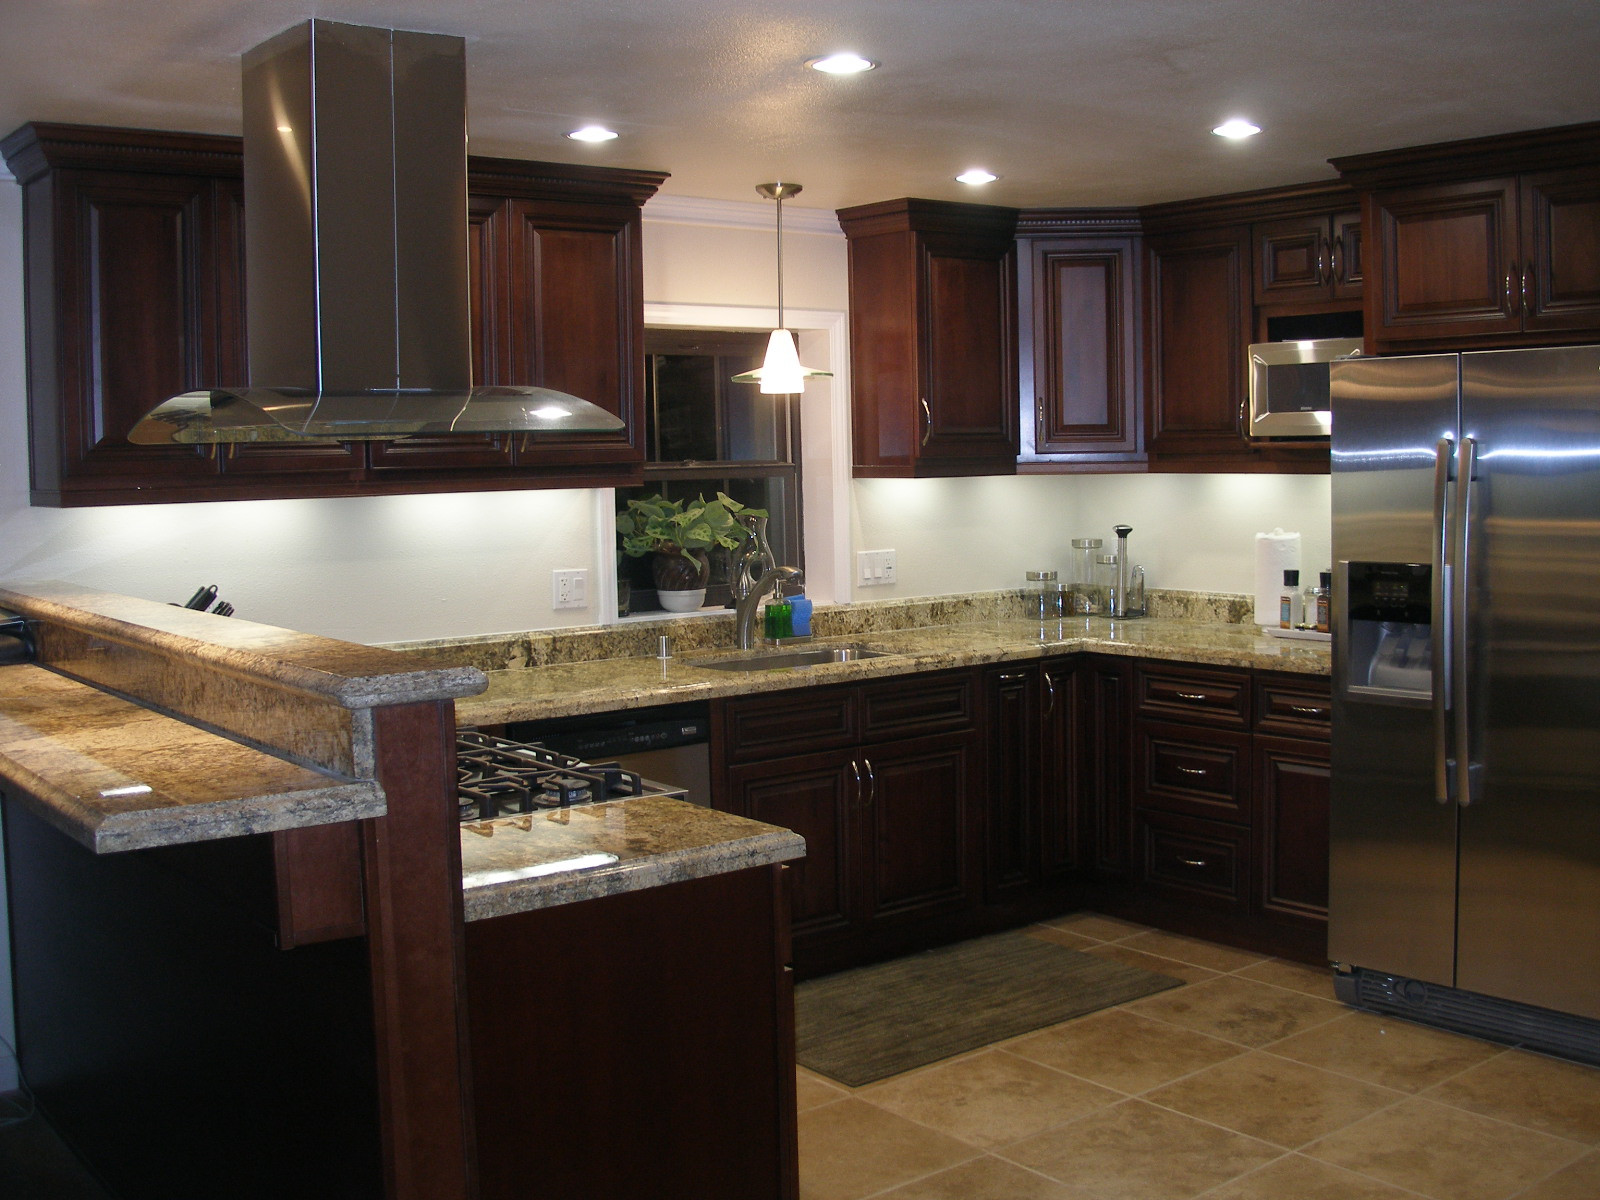 Kitchen remodel bay easy construction - Kitchen renovation designs ...